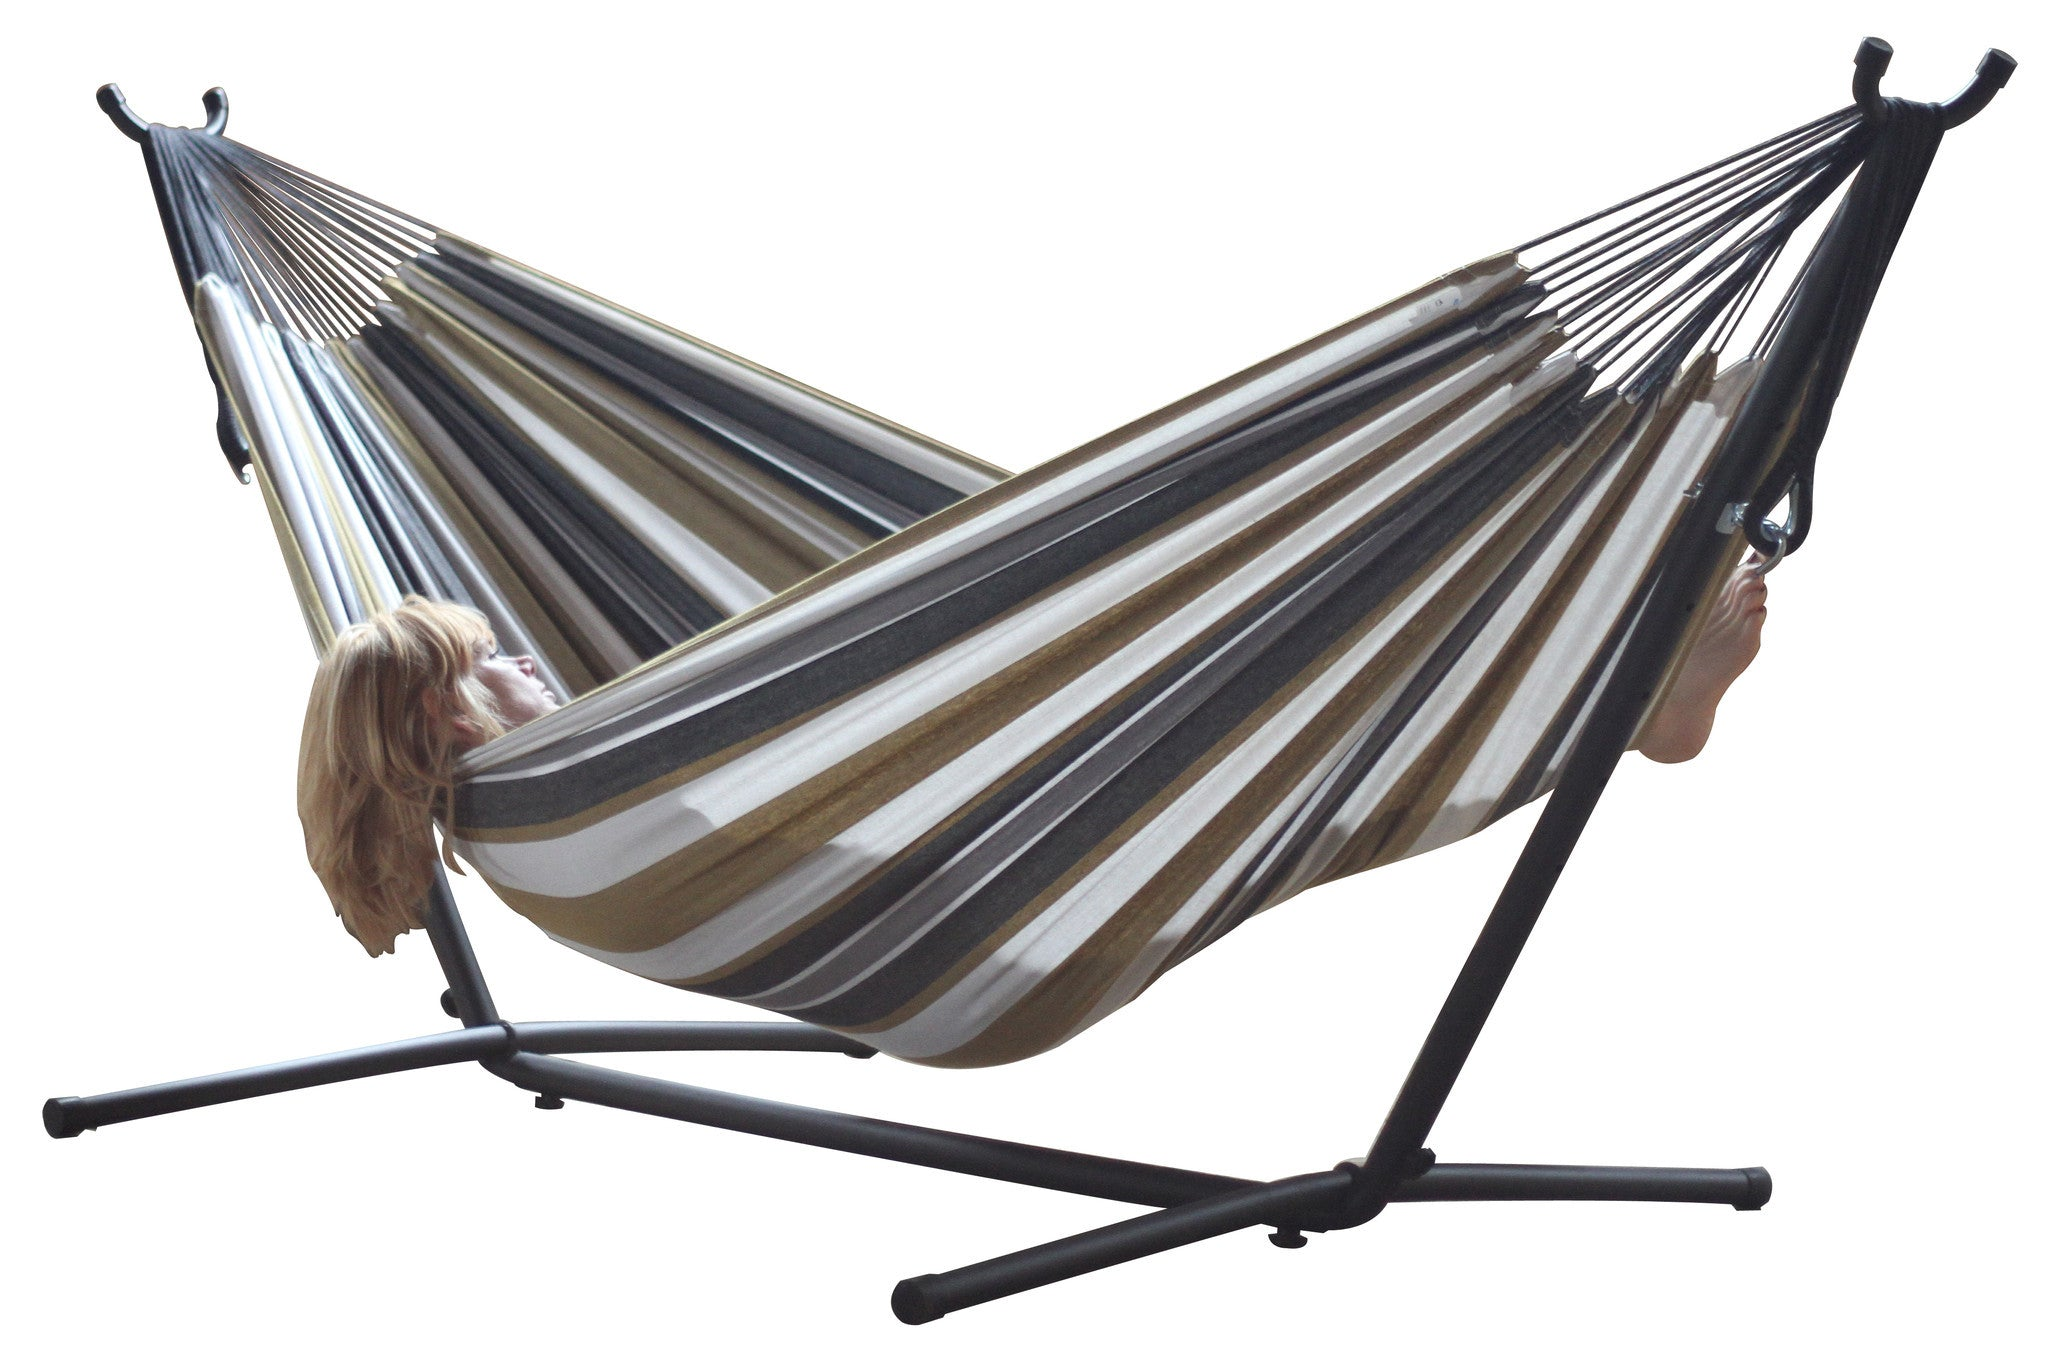 desert moon double cotton hammock with stand  9ft    vivere     vivere  bo double cotton hammock with space saving steel stand      rh   homeandpatioliving